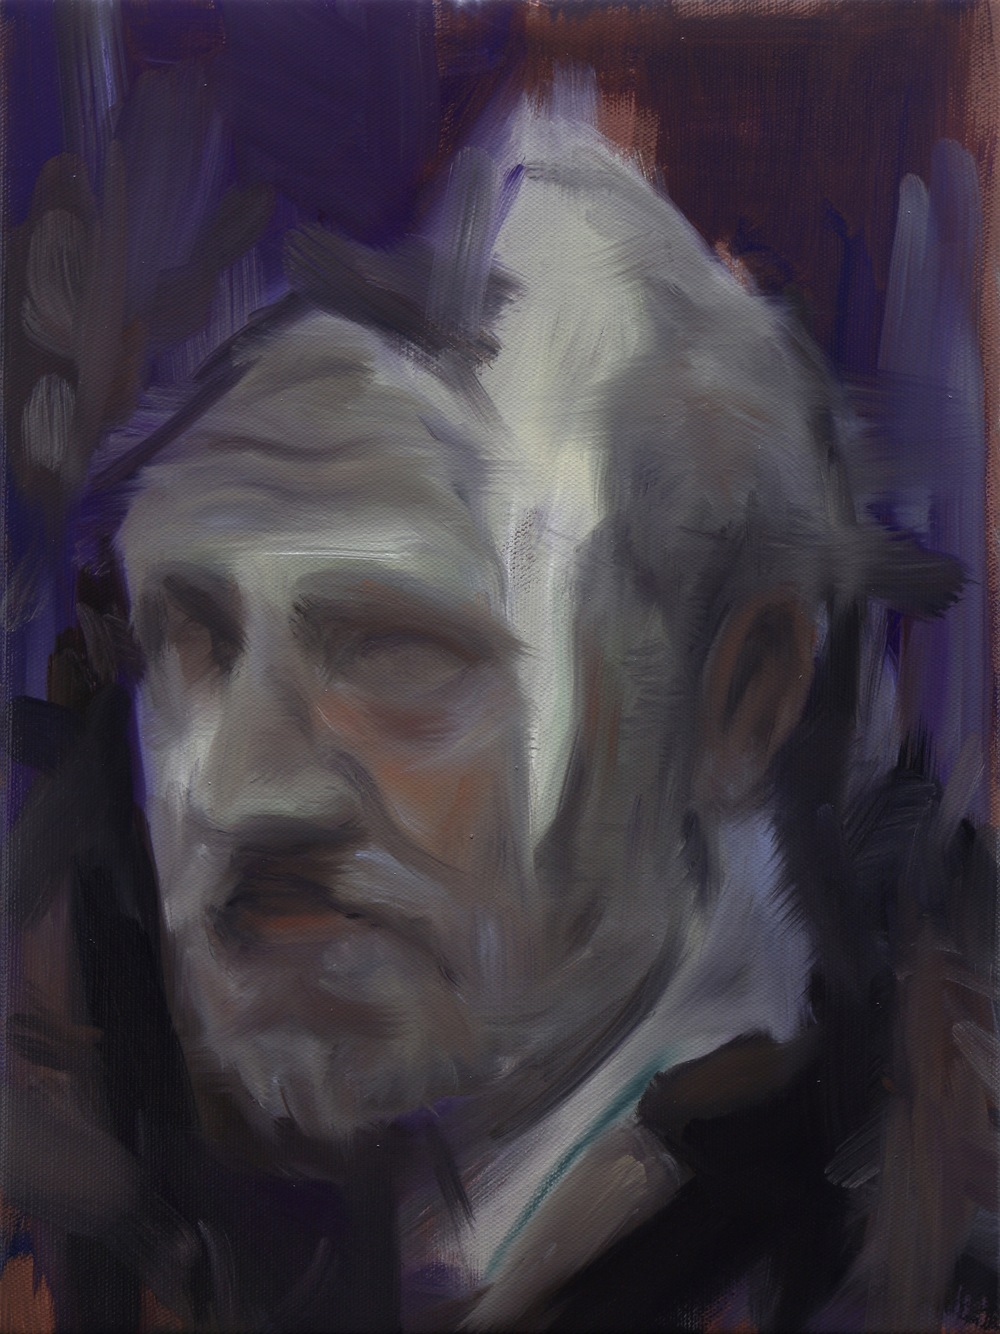 The Traveller, Oil on linen, 40 x 30cm, 2015